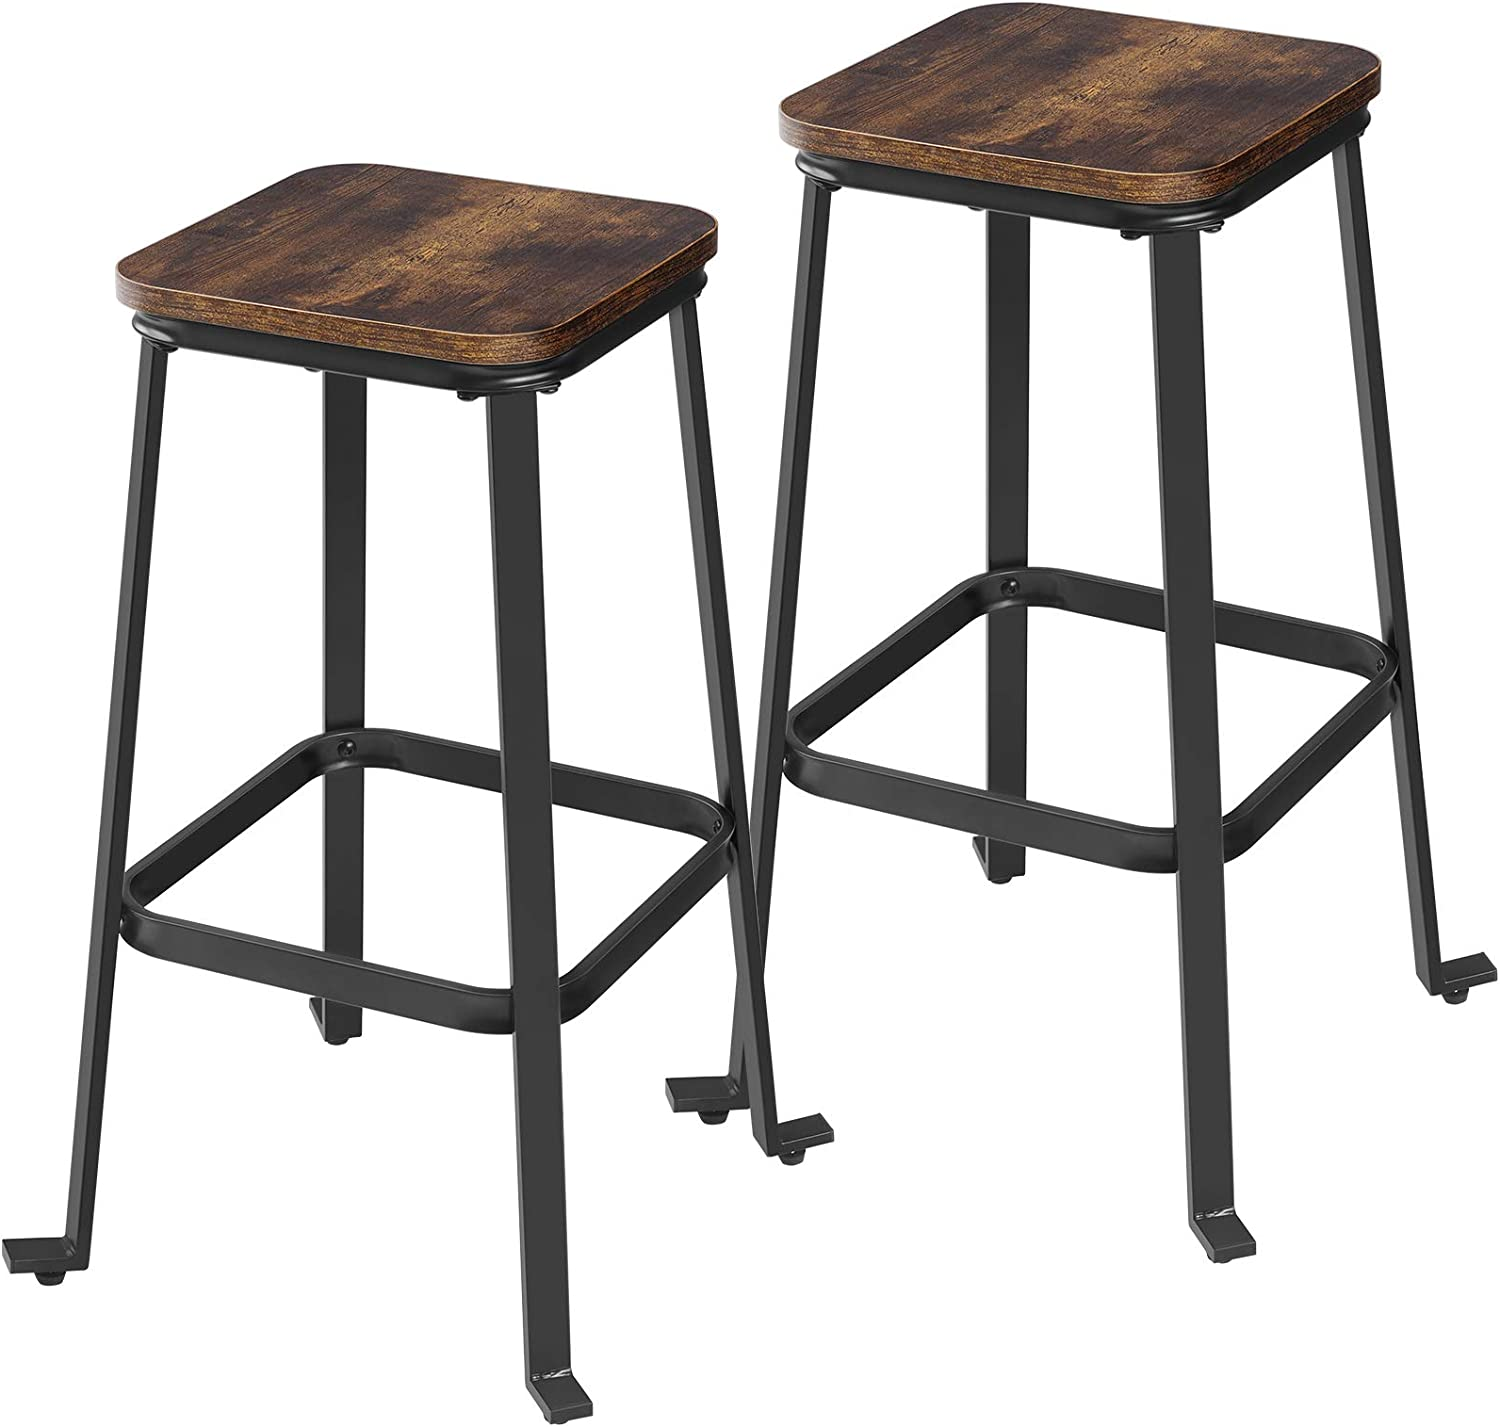 Vasagle Ljb034b02 Set Of 2 Bar Stools Dining Room Chairs For Kitchen Island Counter Bar With Footrest Height 71 Cm Industrial Design Vintage Brown Black Amazon De Home Kitchen